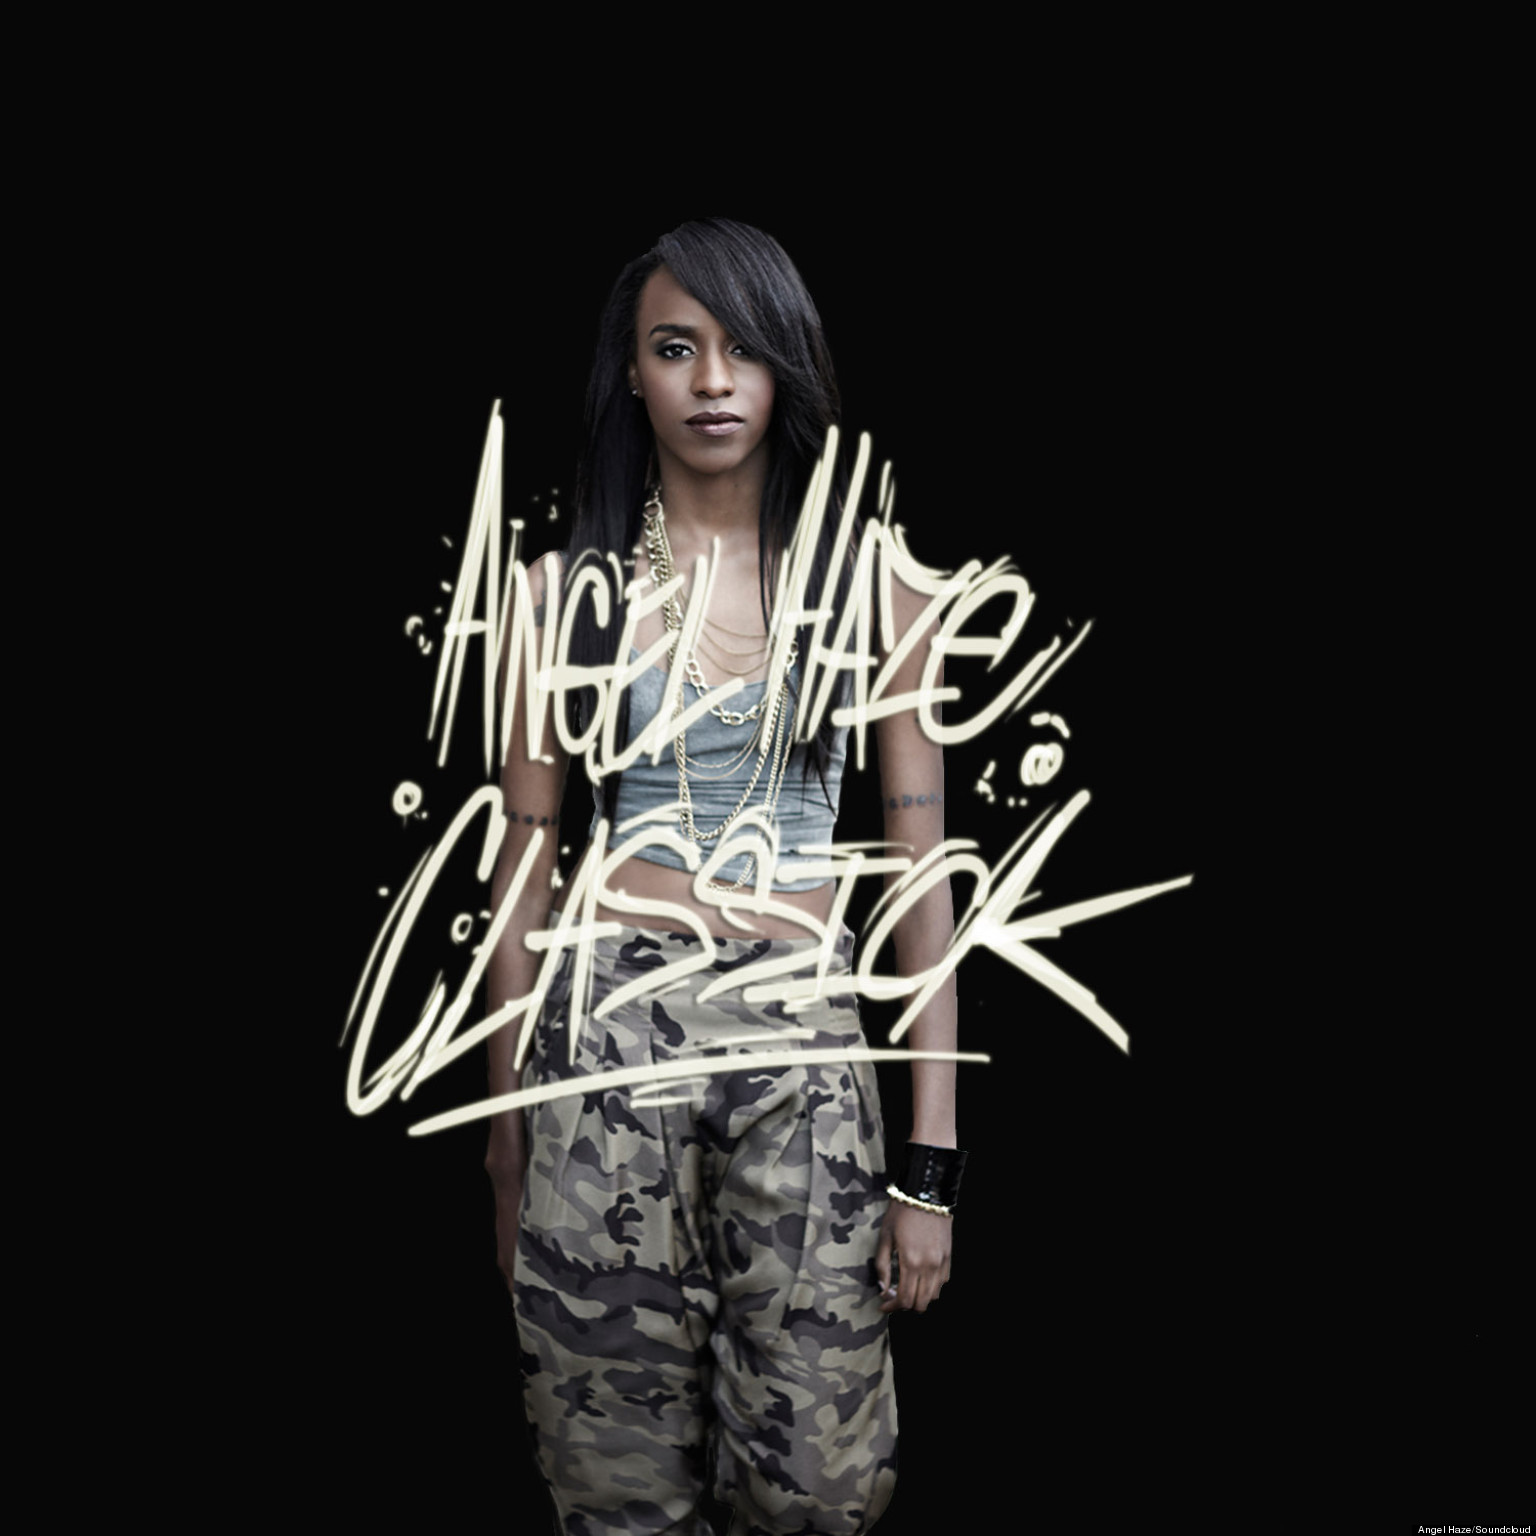 Angel Haze S Cleaning Out My Closet Recounts Sexual